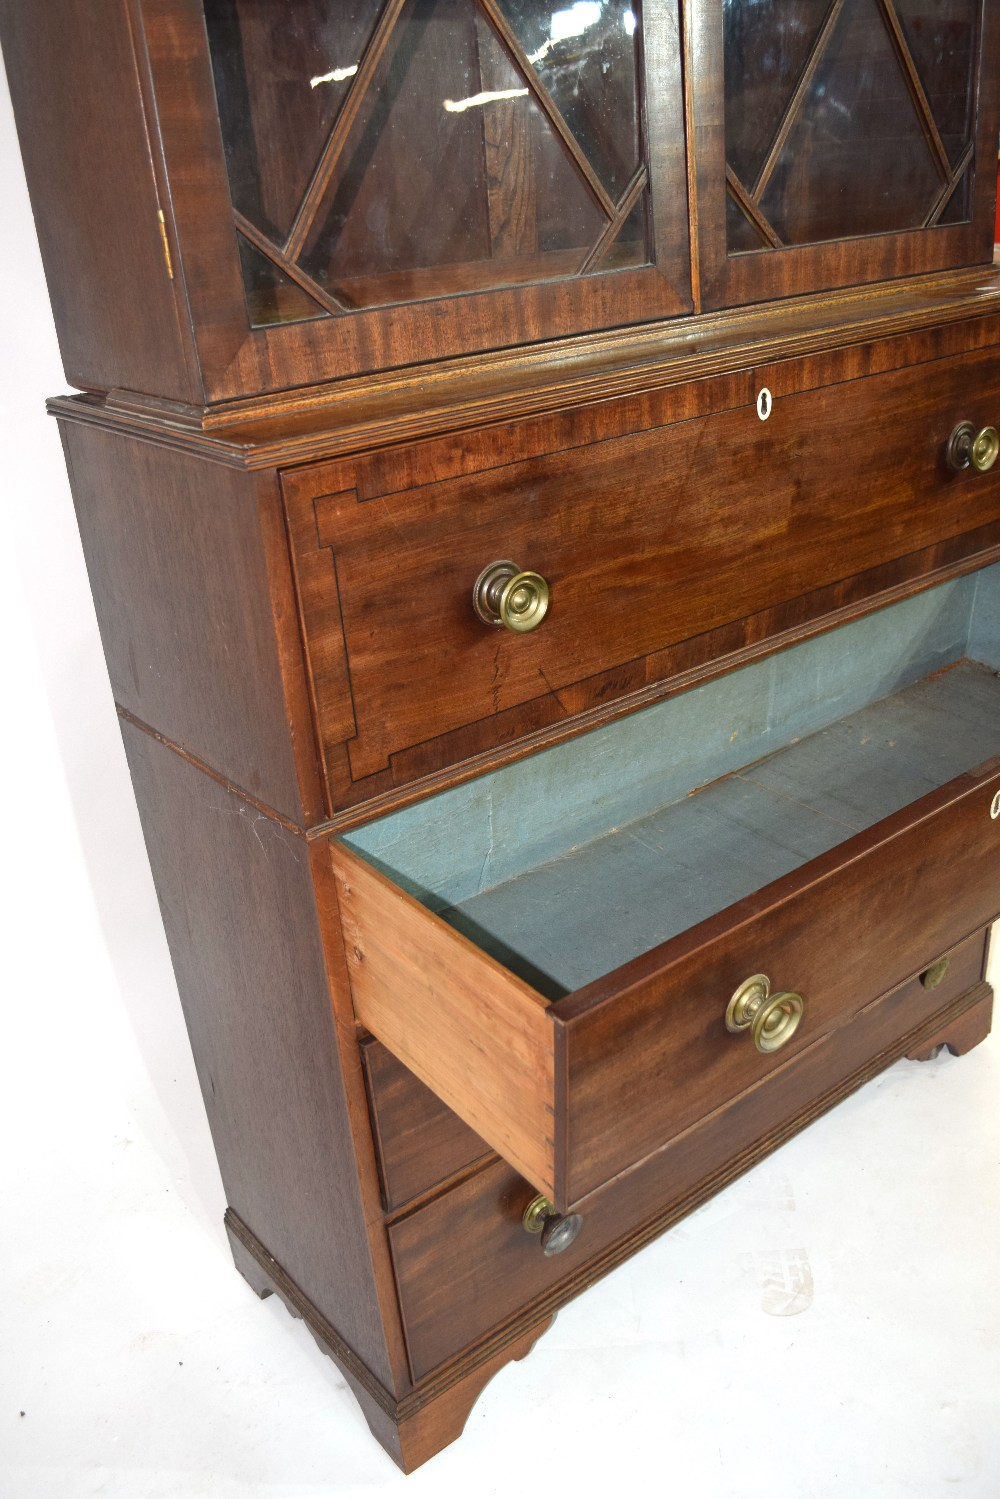 Georgian mahogany secretaire cabinet, top section with a shaped cornice over astragal glazed doors - Image 5 of 6